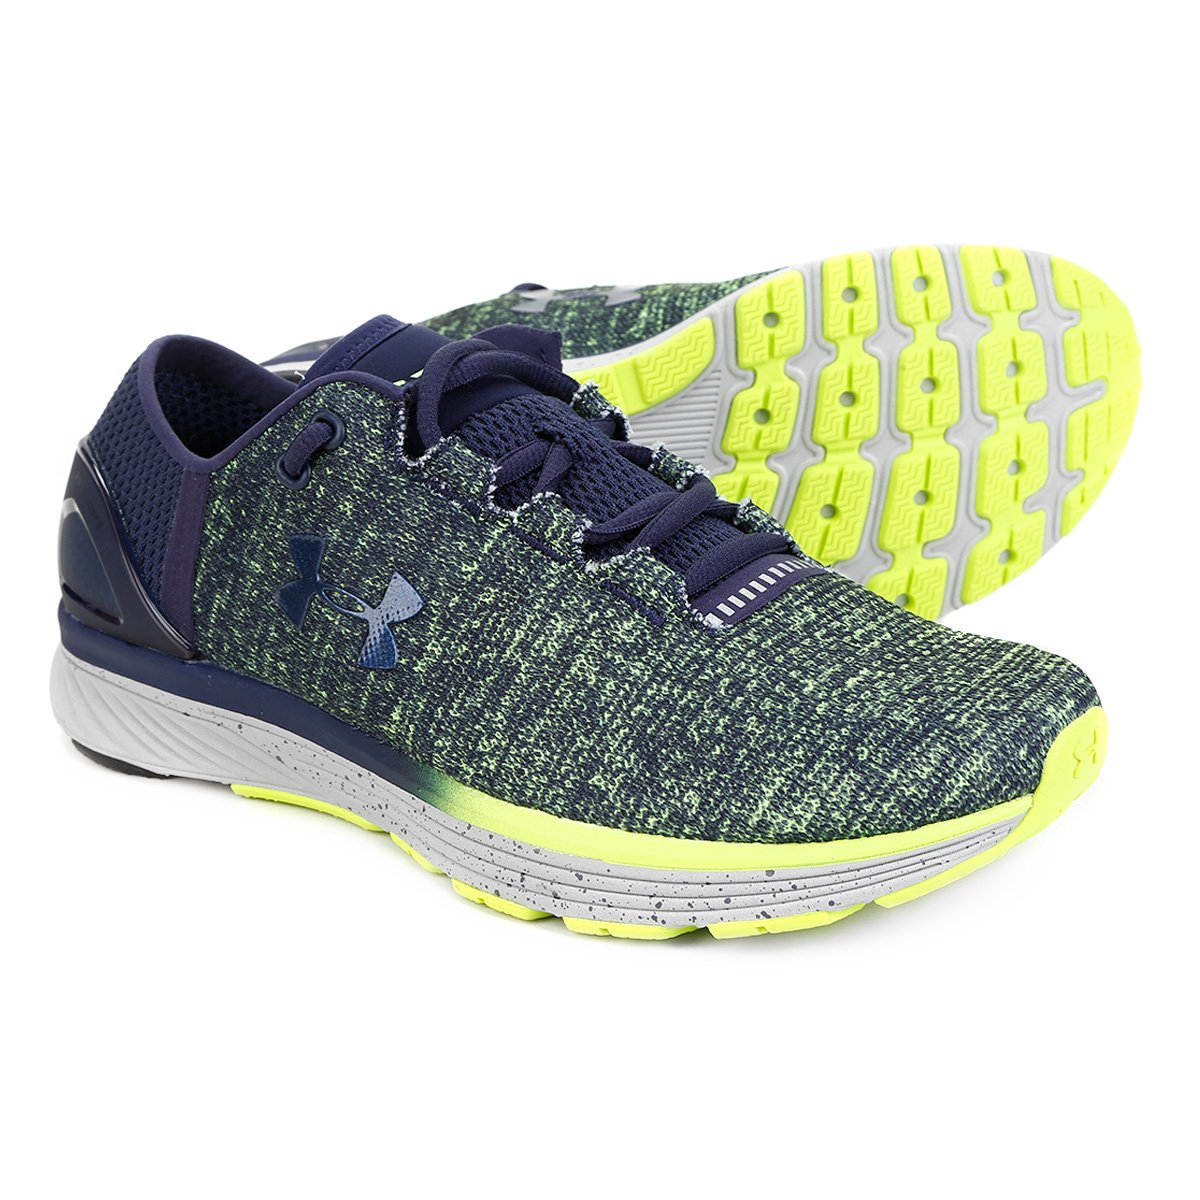 meet 5030c 0ce22 Tênis Under Armour Charged Bandit 3 Masculino - Verde e Azul